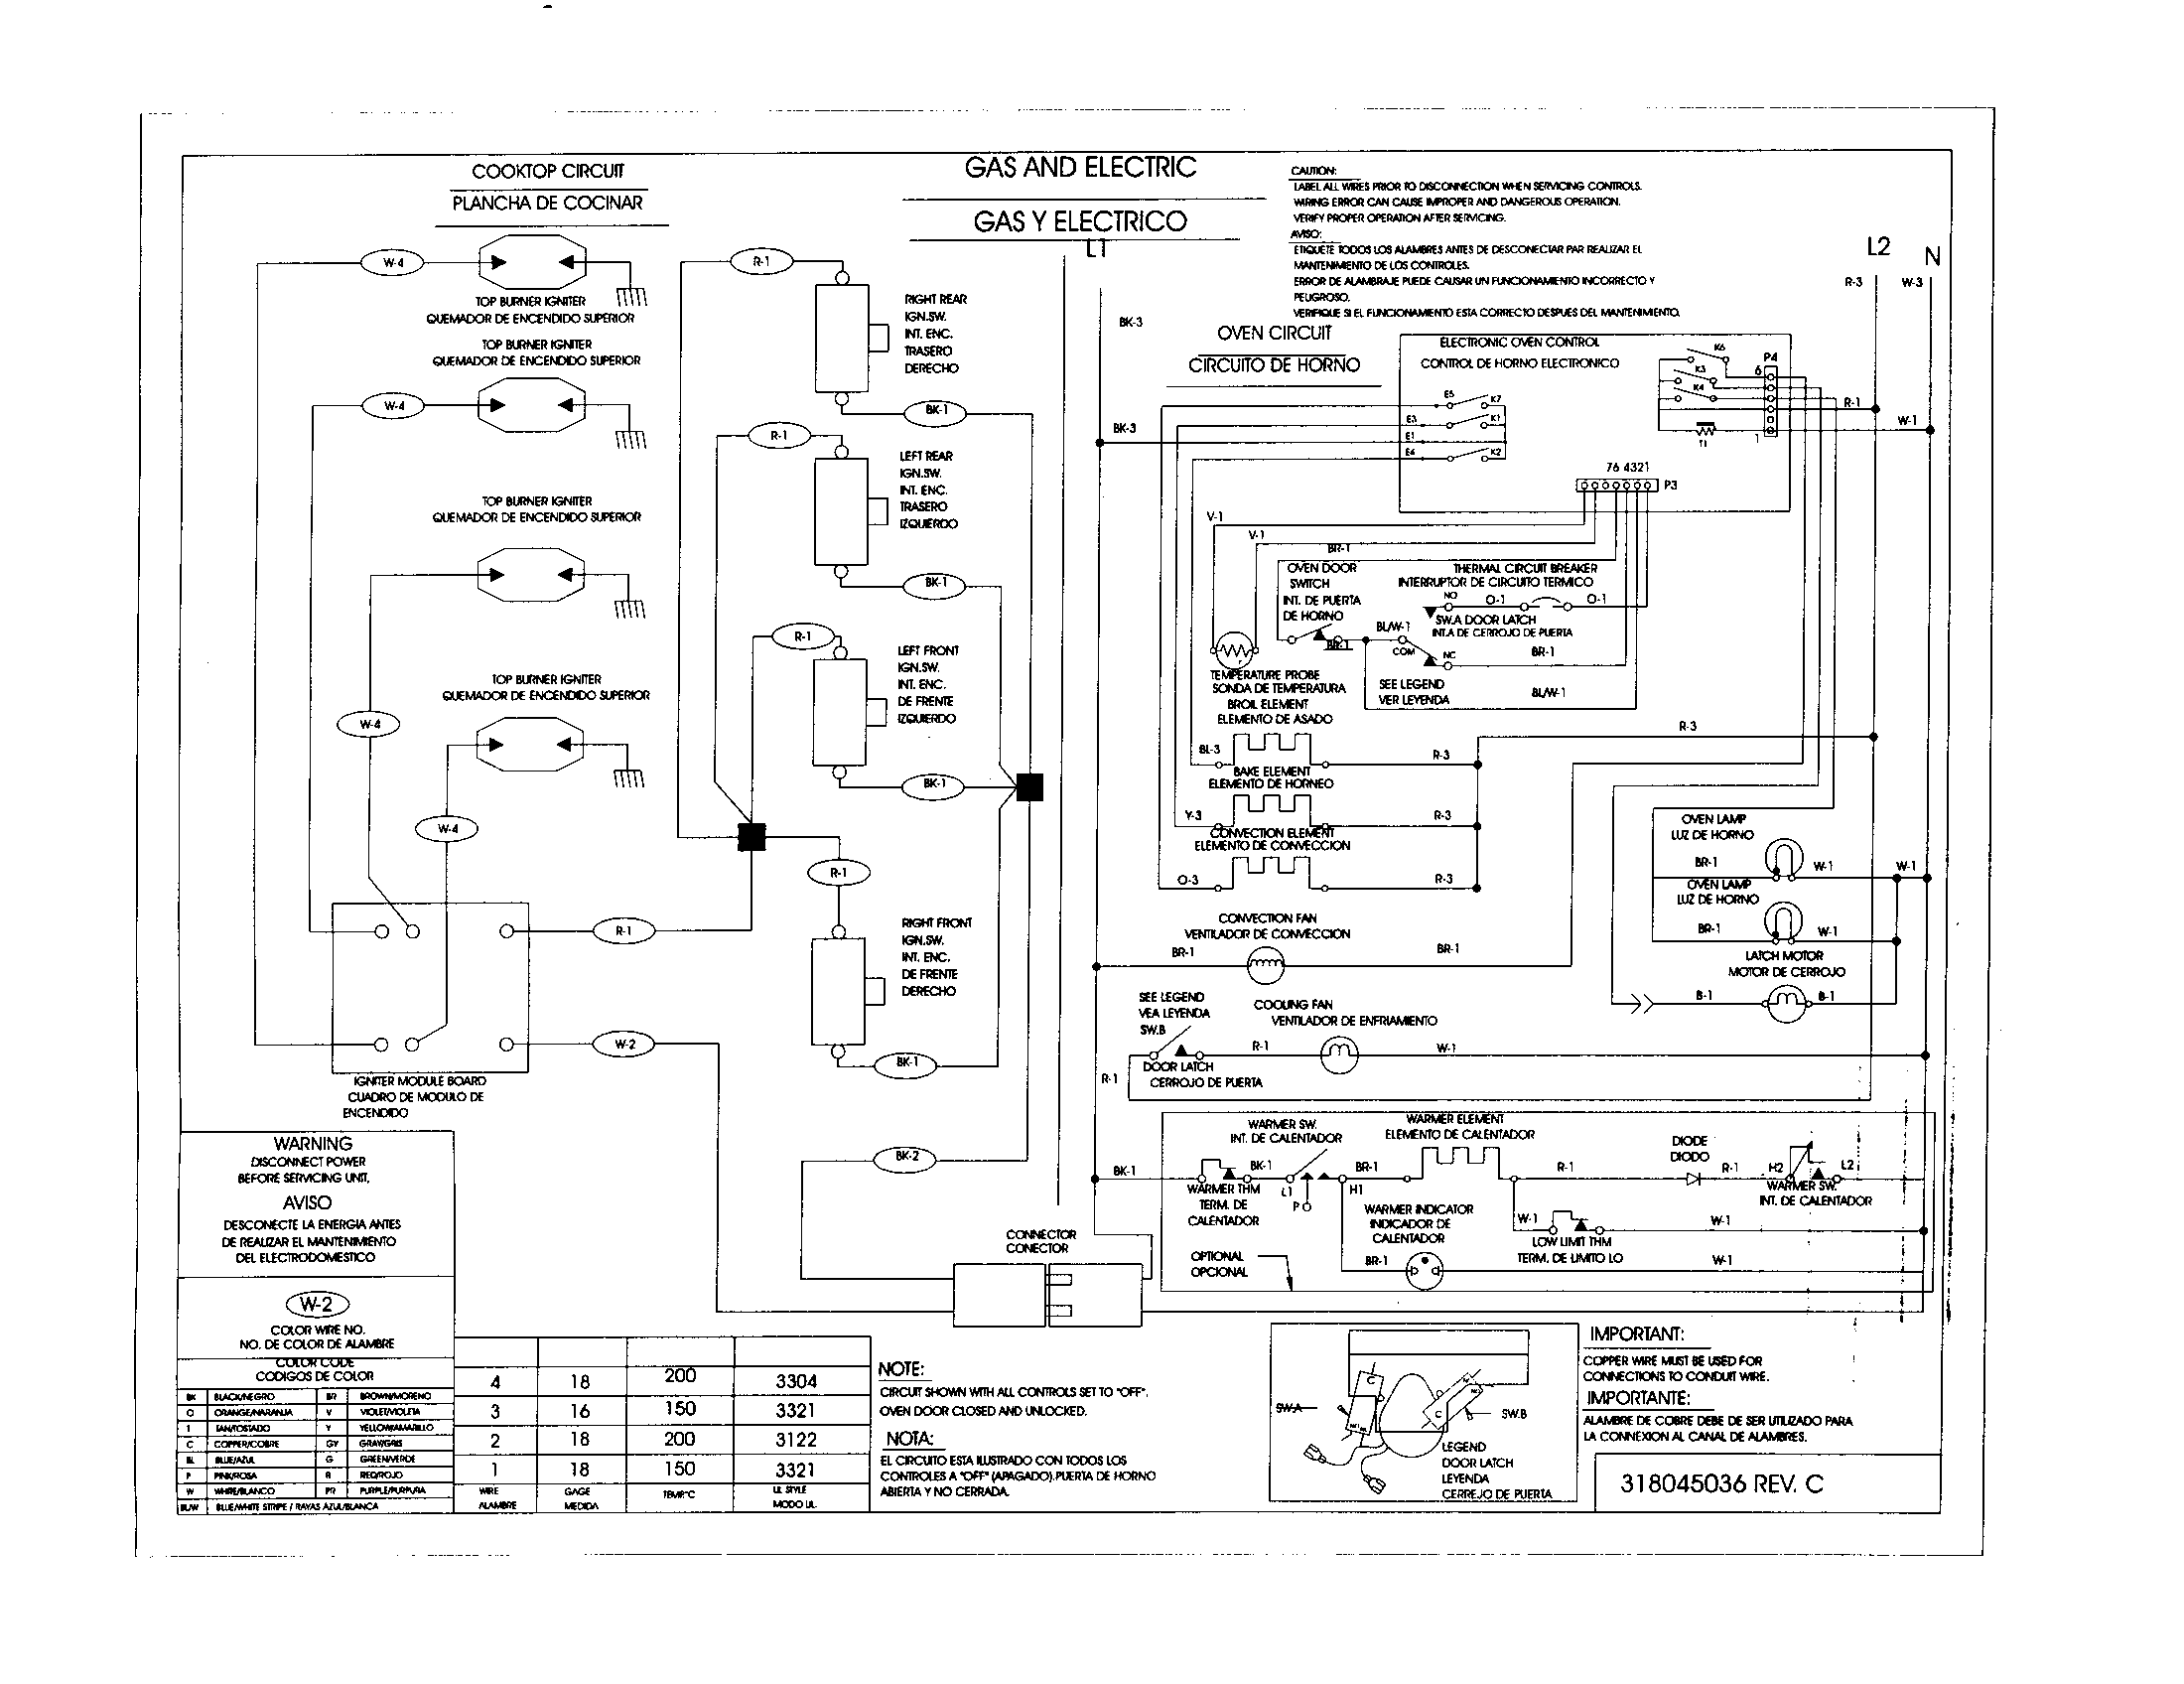 electrolux range wiring diagram schematics wiring diagrams u2022 rh parntesis co Electrolux Refrigerator Parts Diagram Electrolux Vacuum Cleaner Parts Diagram